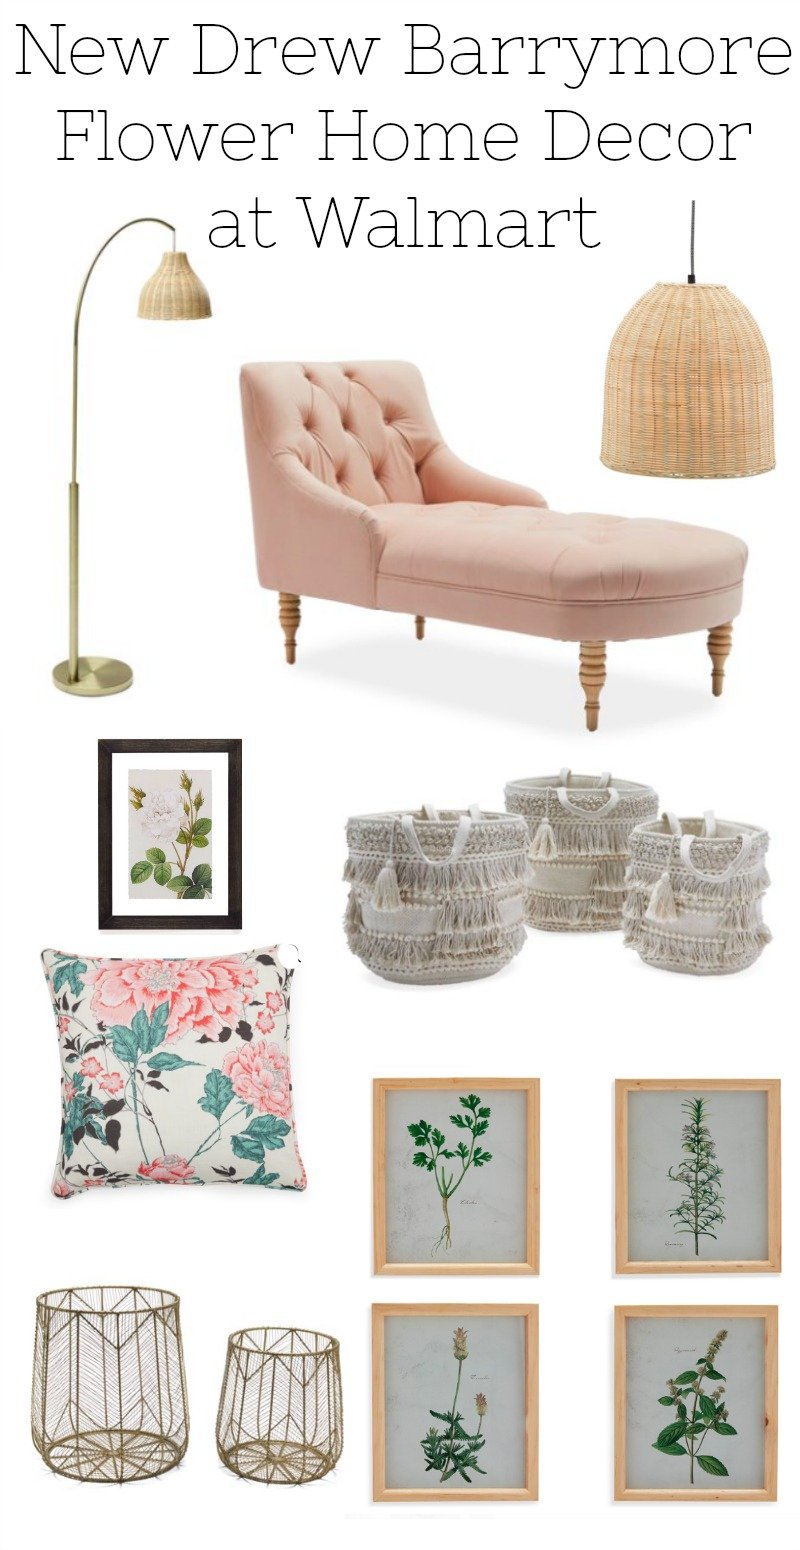 Well I Dont Think This Has Ever Happened Before On The Blog But Im Doubling Up Posts Today Because DREW BARRYMORE JUST LAUNCHED A HOME DECOR LINE AT